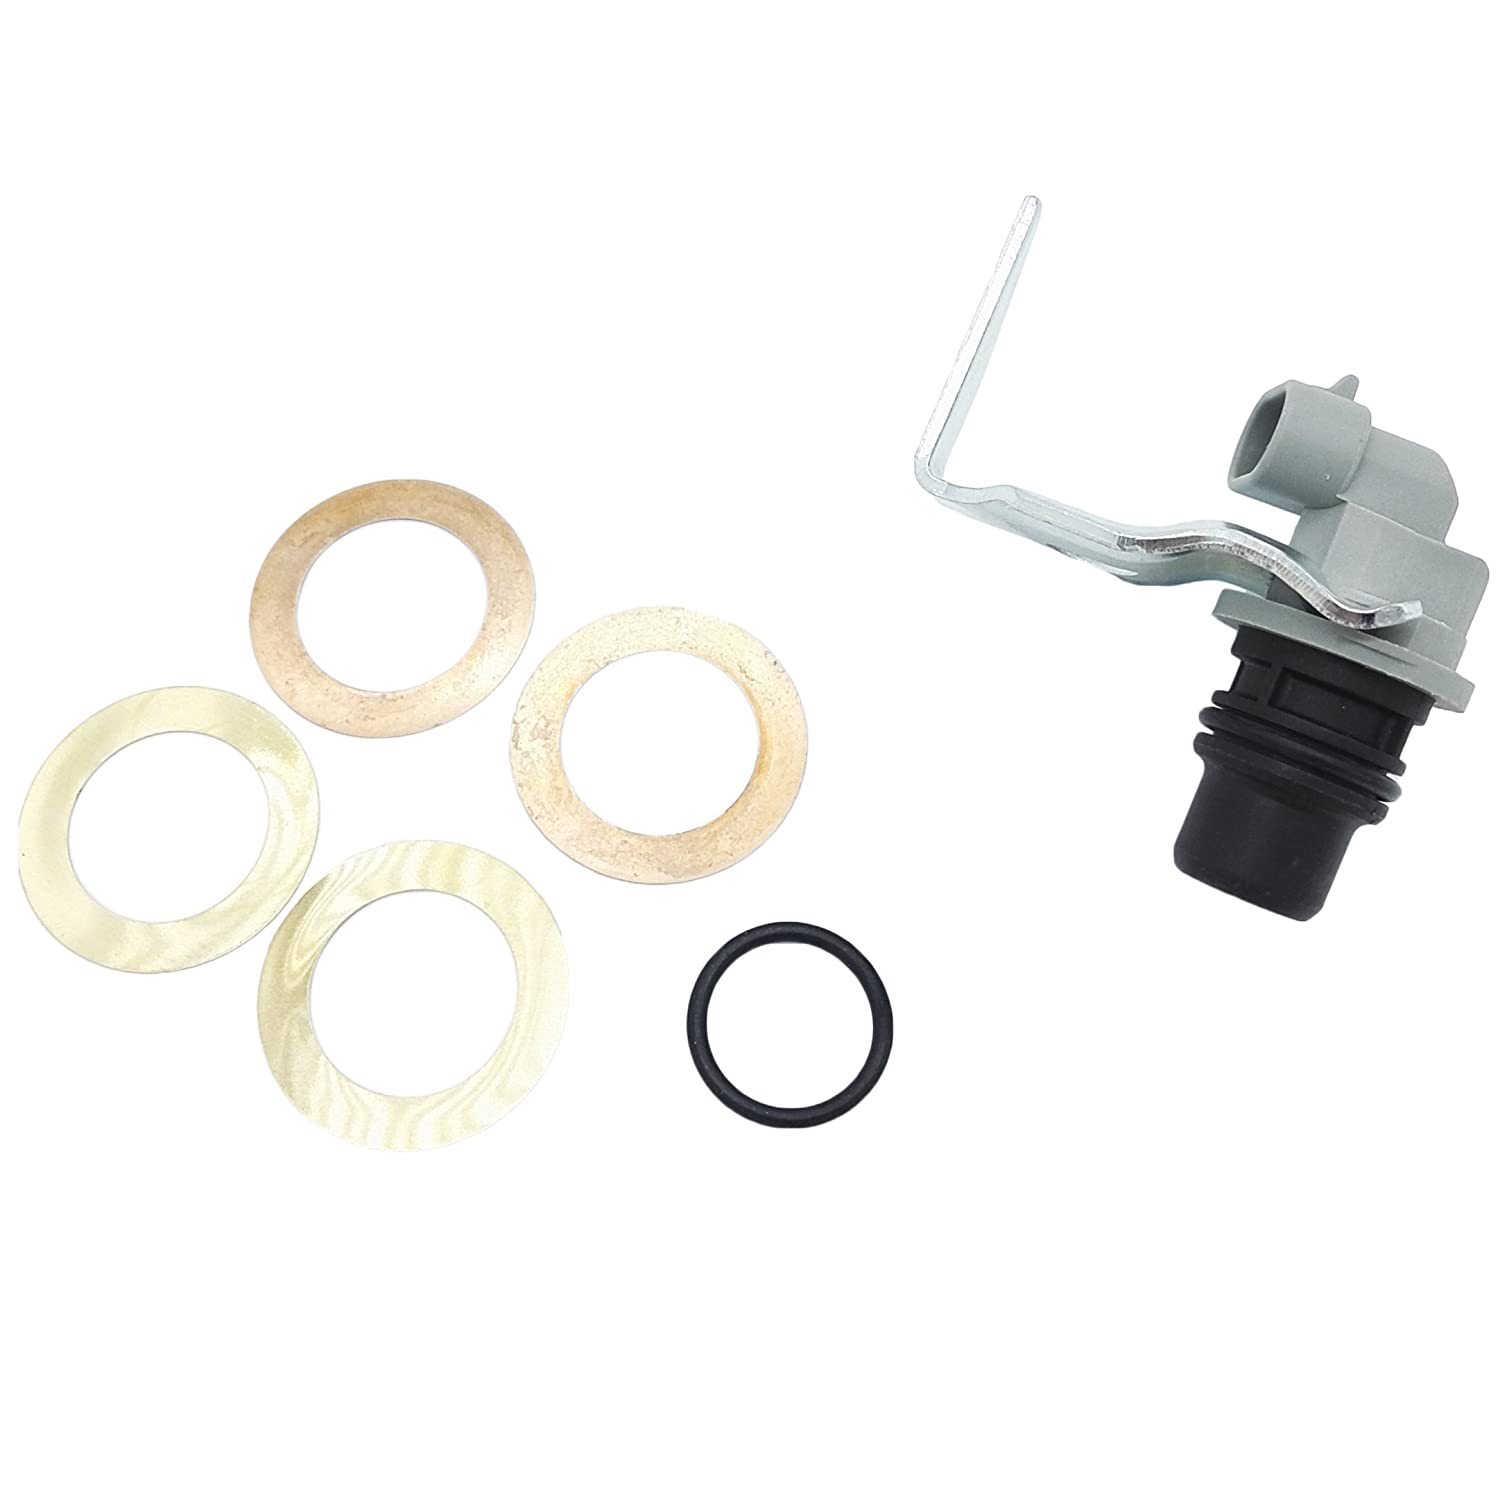 OKAY MOTOR CPS Camshaft Position Sensor for Navistar International Duty  Truck DT466E 1885781C91